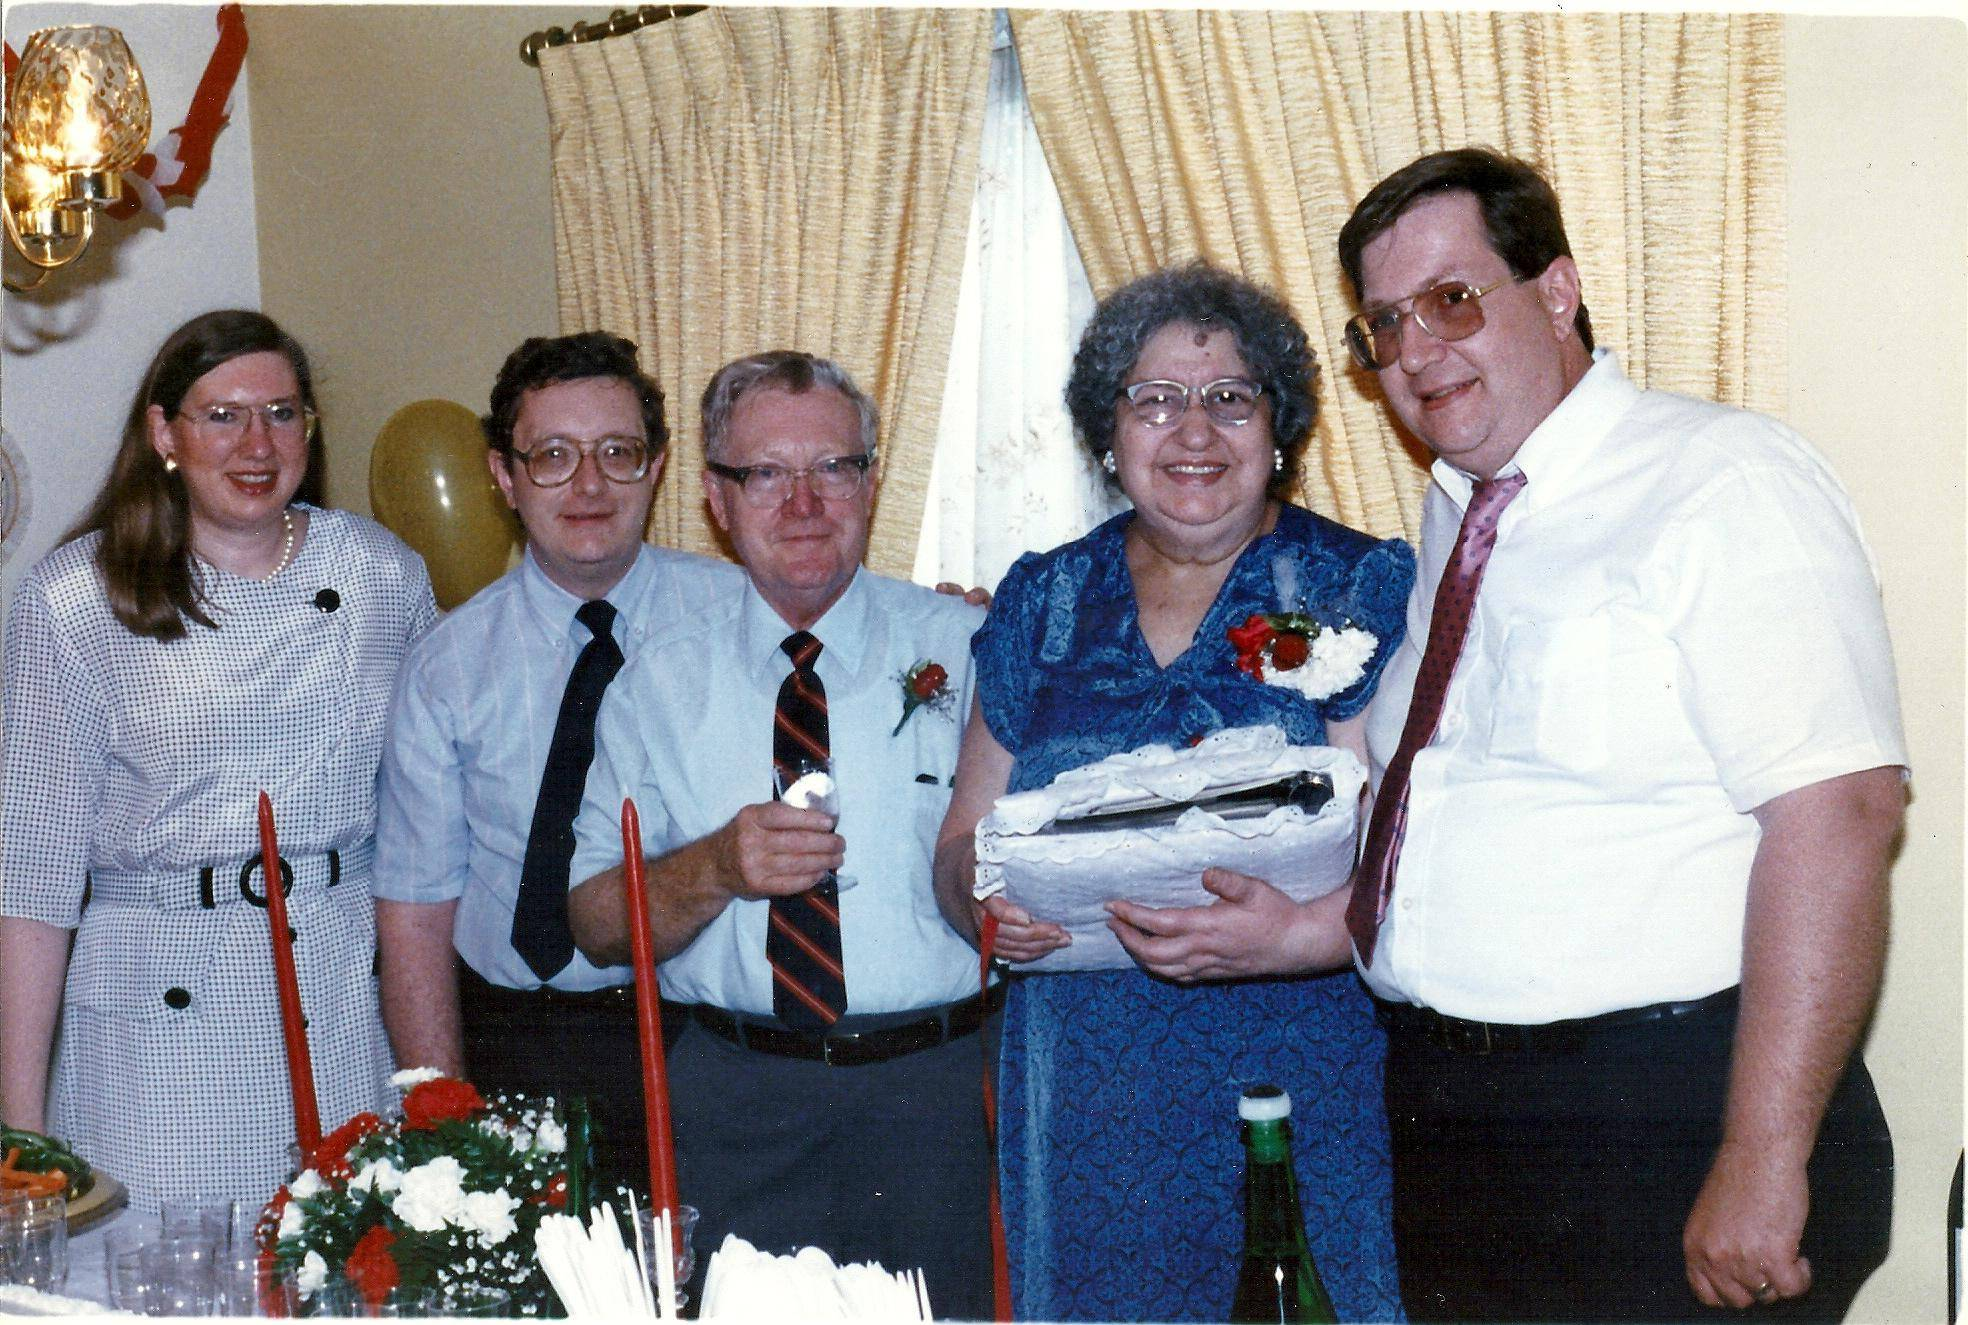 This is one of Business Writer Anna Marie Kukec's favorite photos with her mother, Angeline Kukec, taken at her parent's 40th wedding anniversary in 1988, and the last before her mother passed away. Anna Marie, from left, brother Paul Kukec of Darien, father Ernest Kukec of Evergreen Park, the late Angeline, and the late William Kukec, formerly of Naperville.